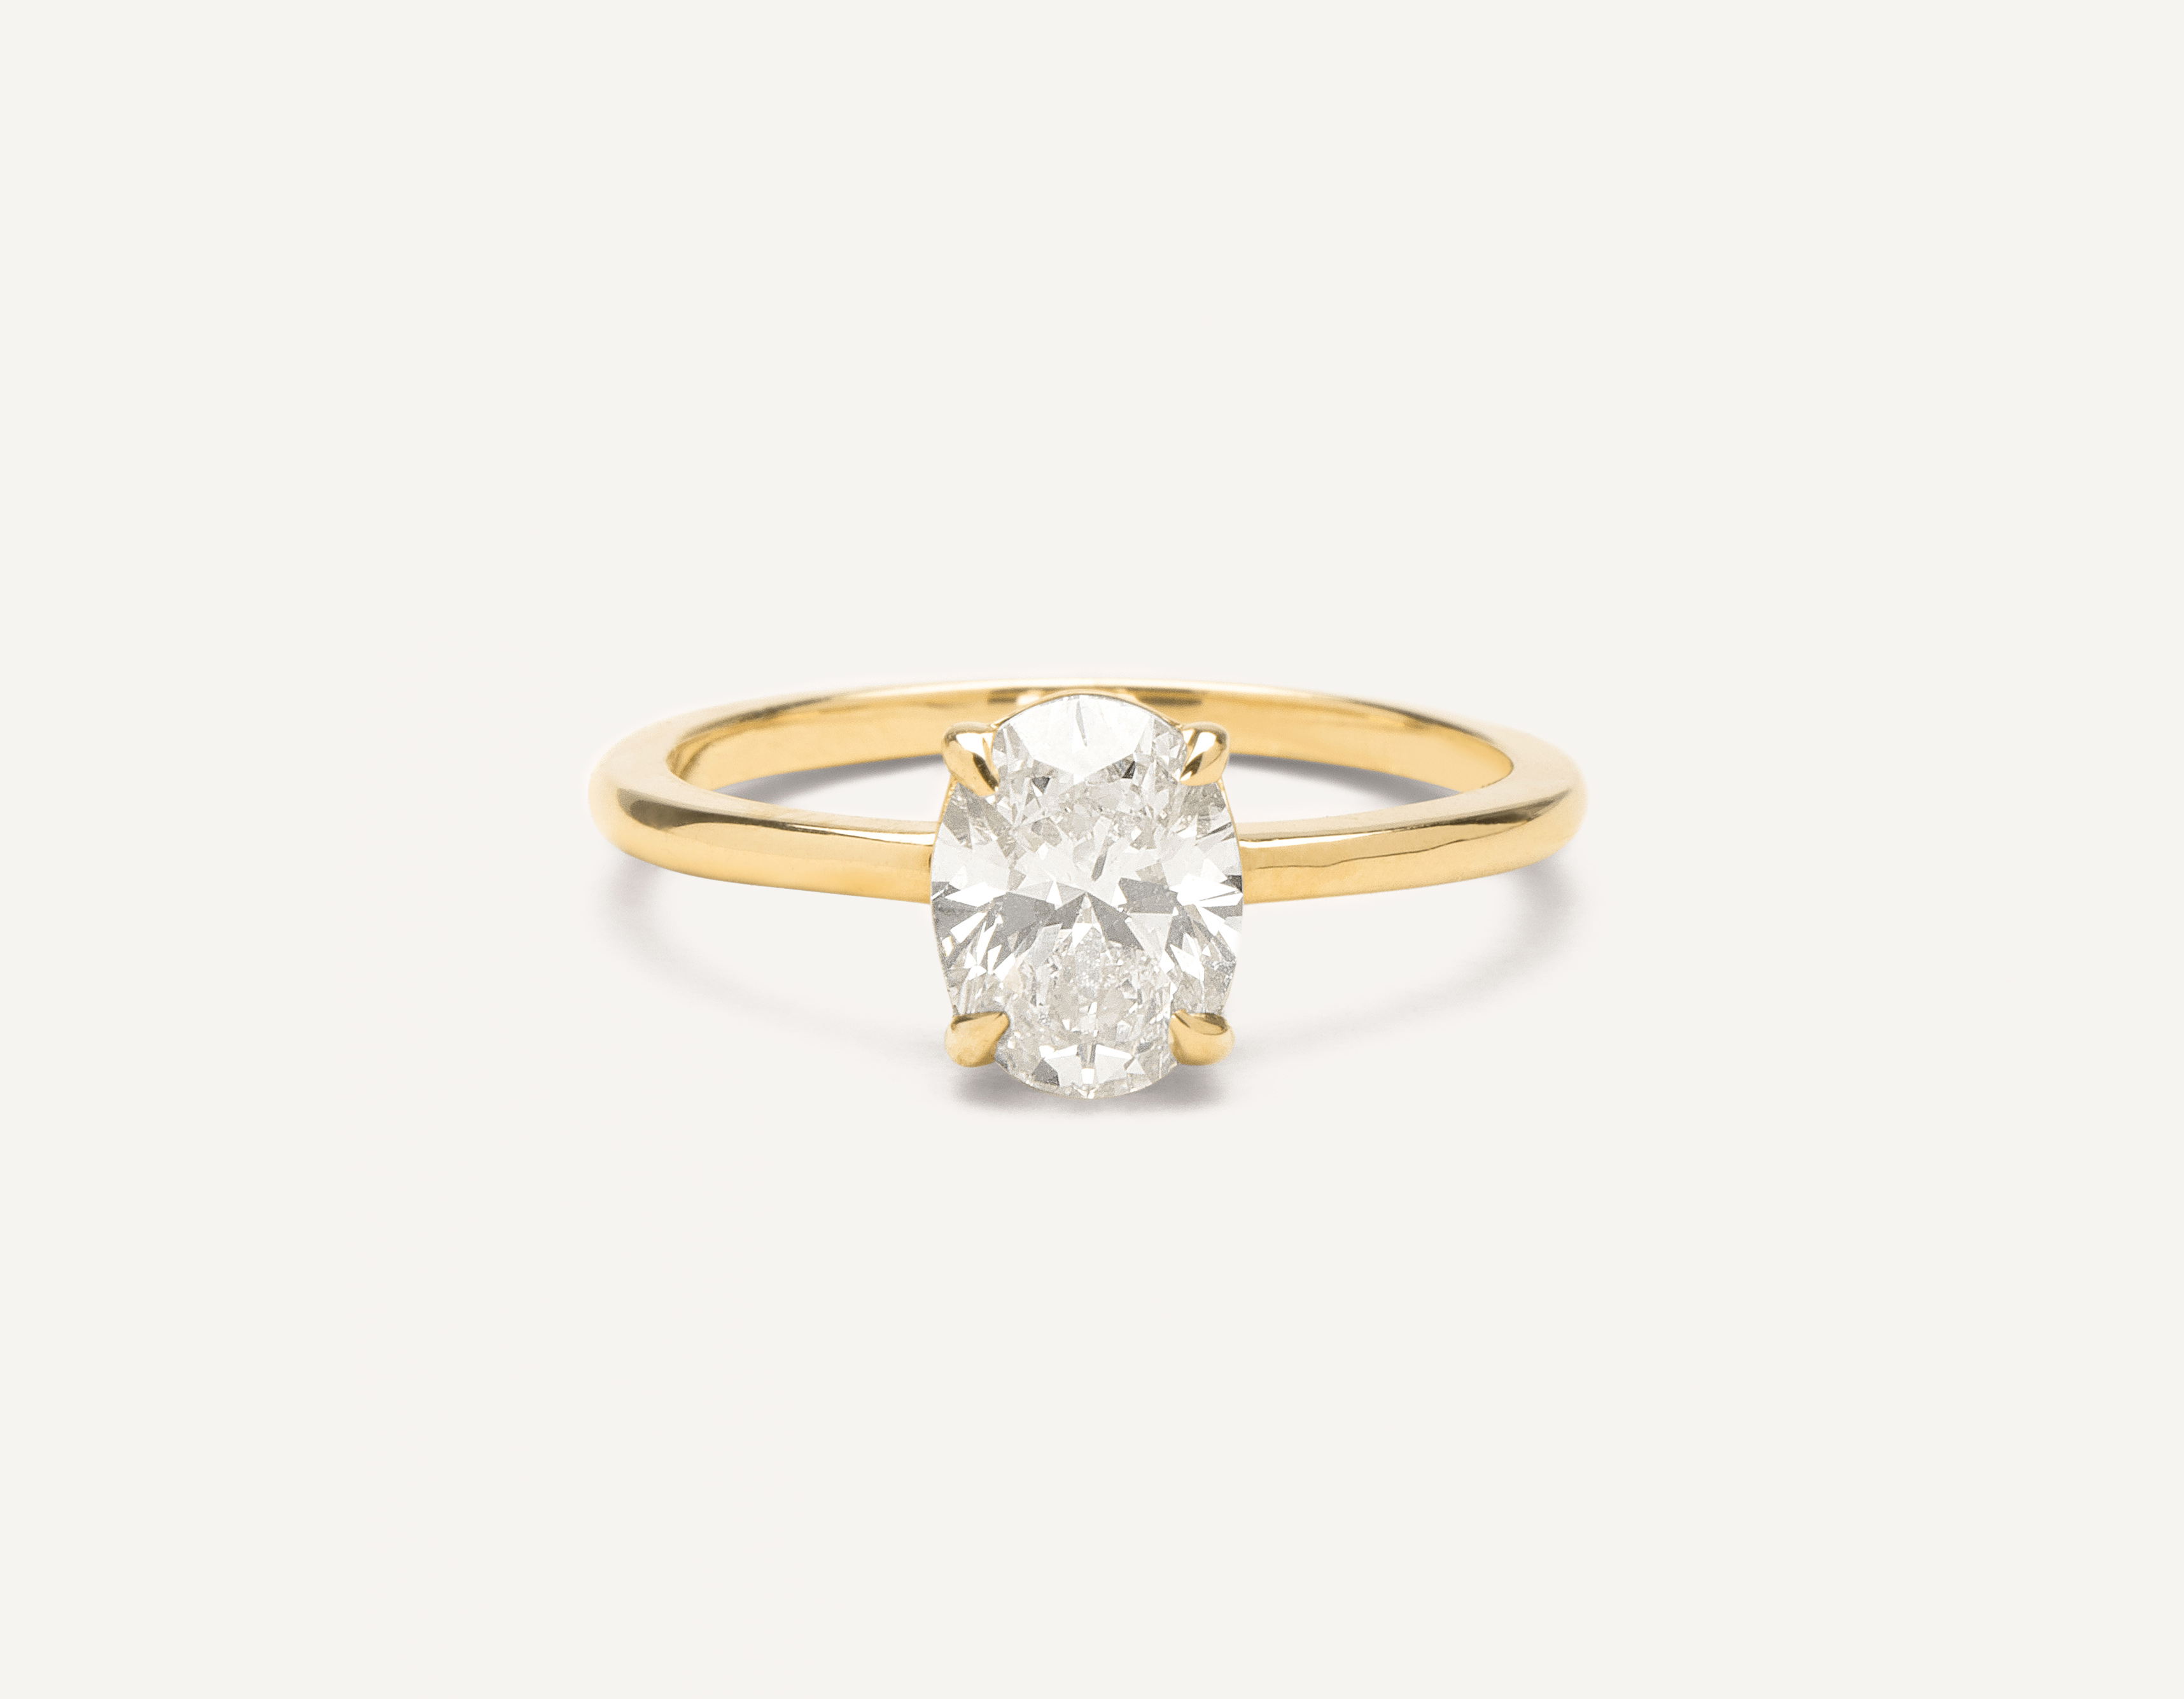 Engagement Rings Honest 1 Carat D Si1 Natural Clarity Diamond Solitaire Engagement Ring 18k White Gold Fine Jewelry